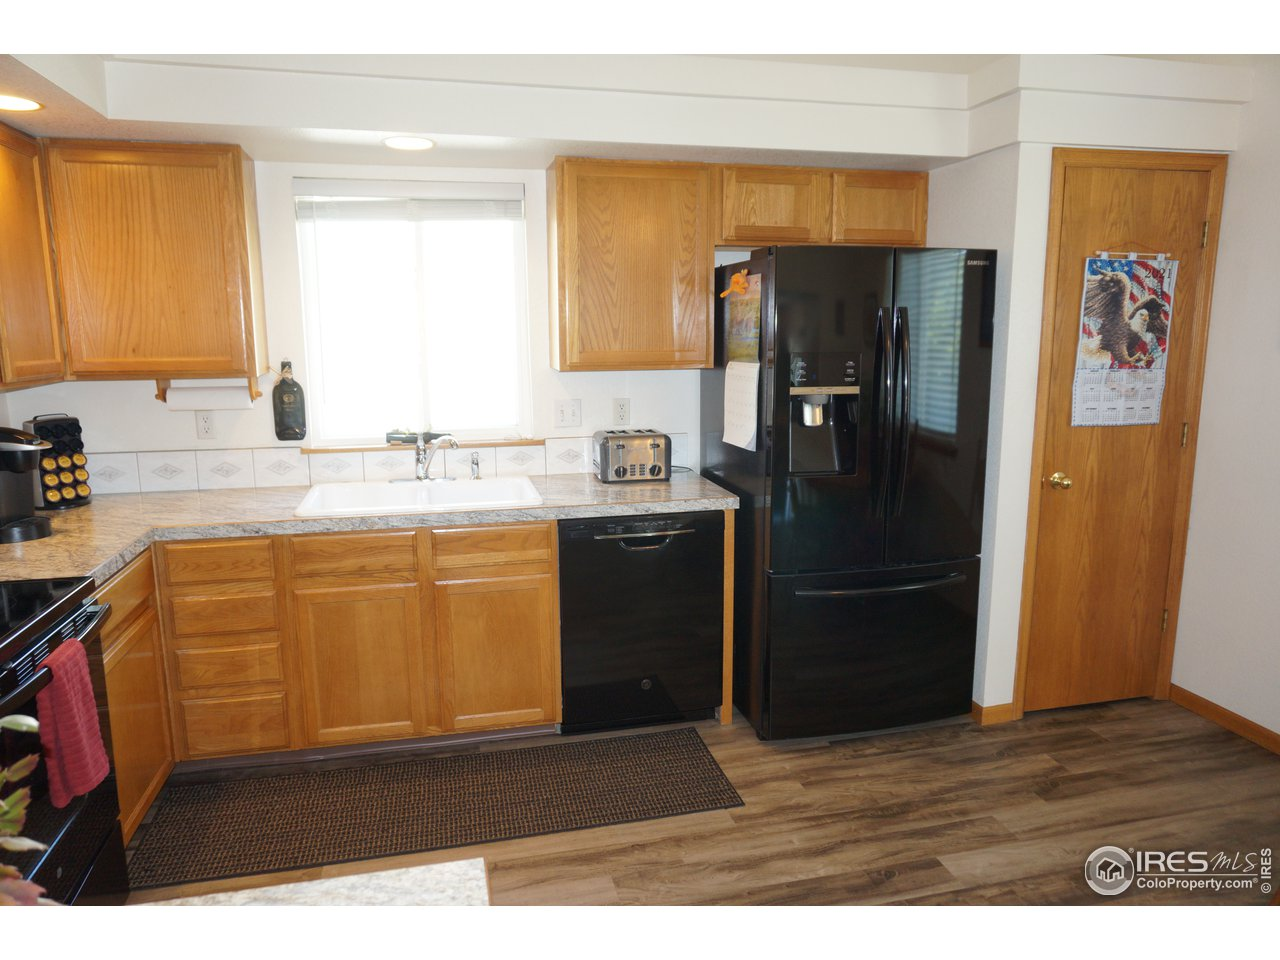 Newer Appliances, Pantry